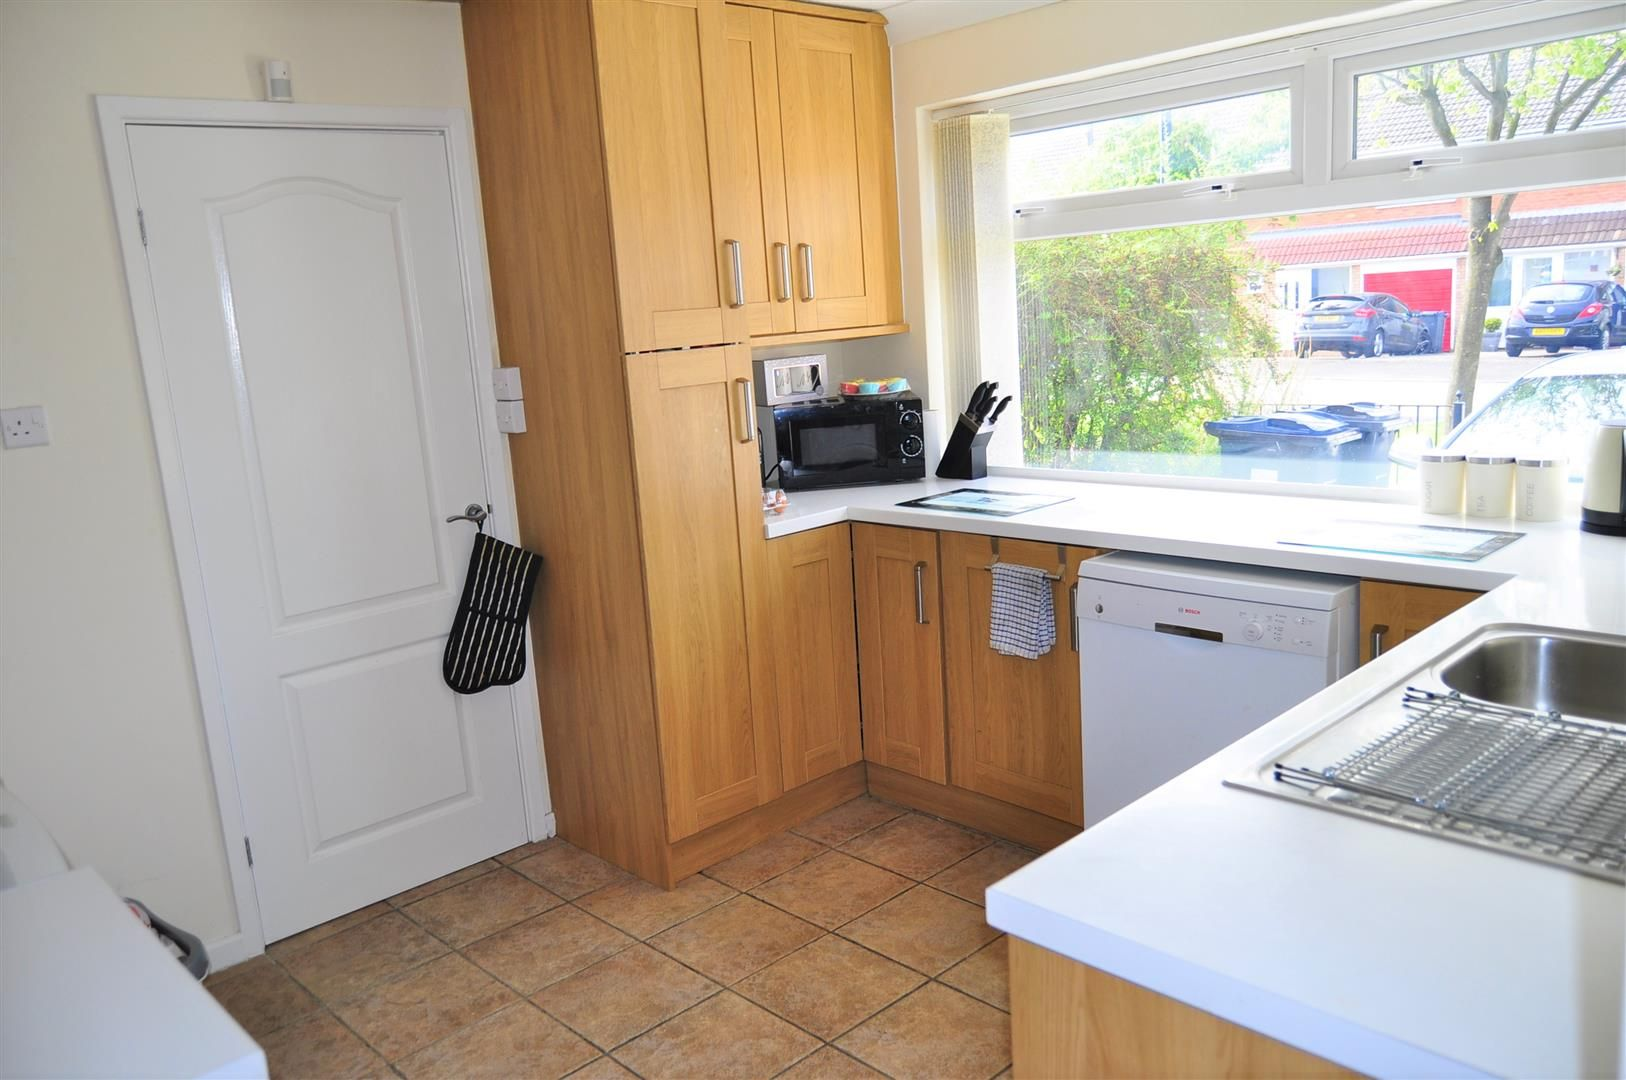 3 bed end-of-terrace for sale in Quinton  - Property Image 5